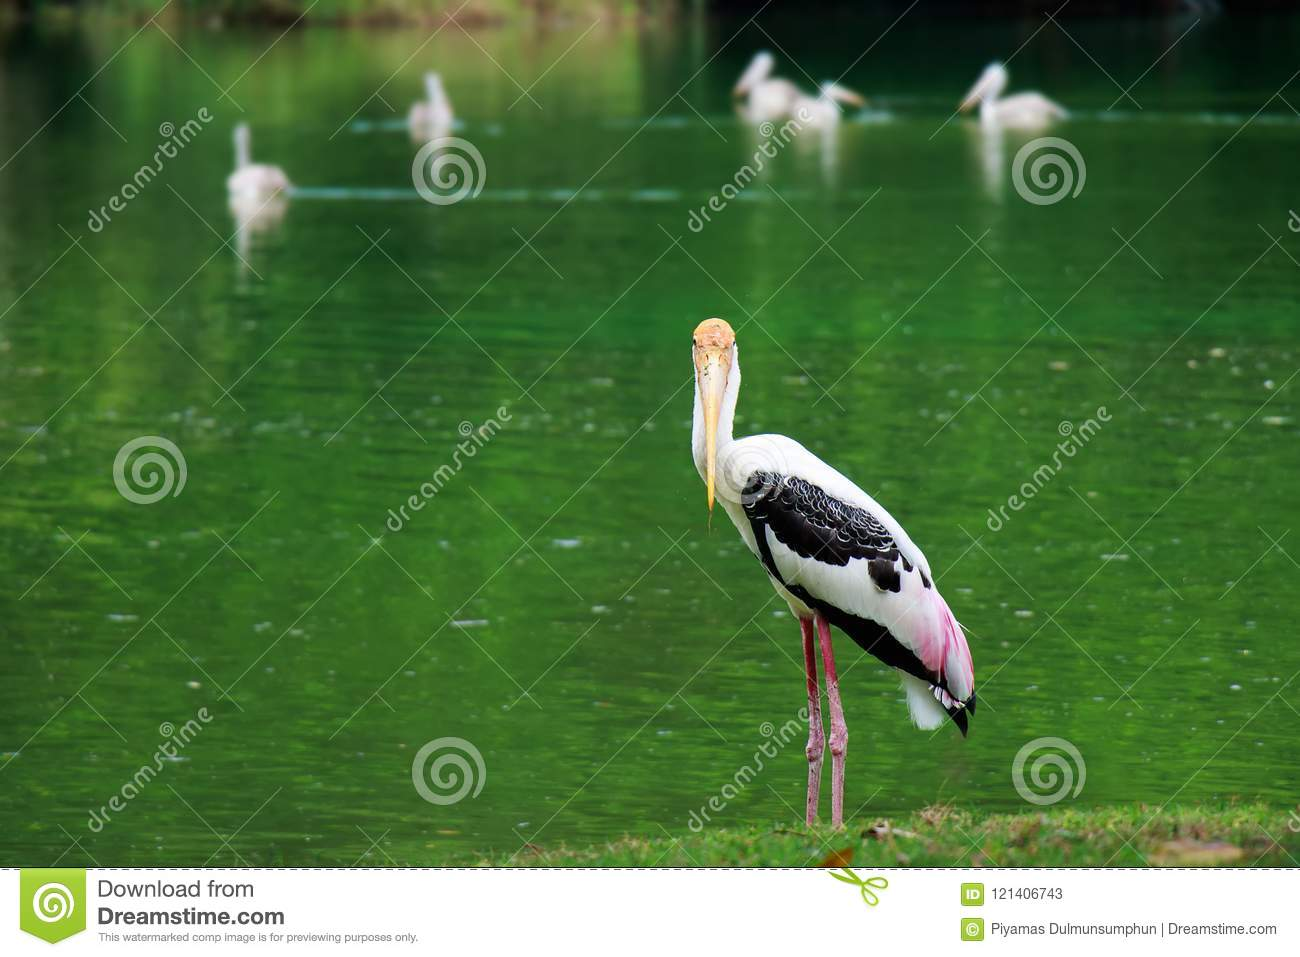 single of pelican catch fish from lake river. Pelican bird wallpaper , animal wildlife background